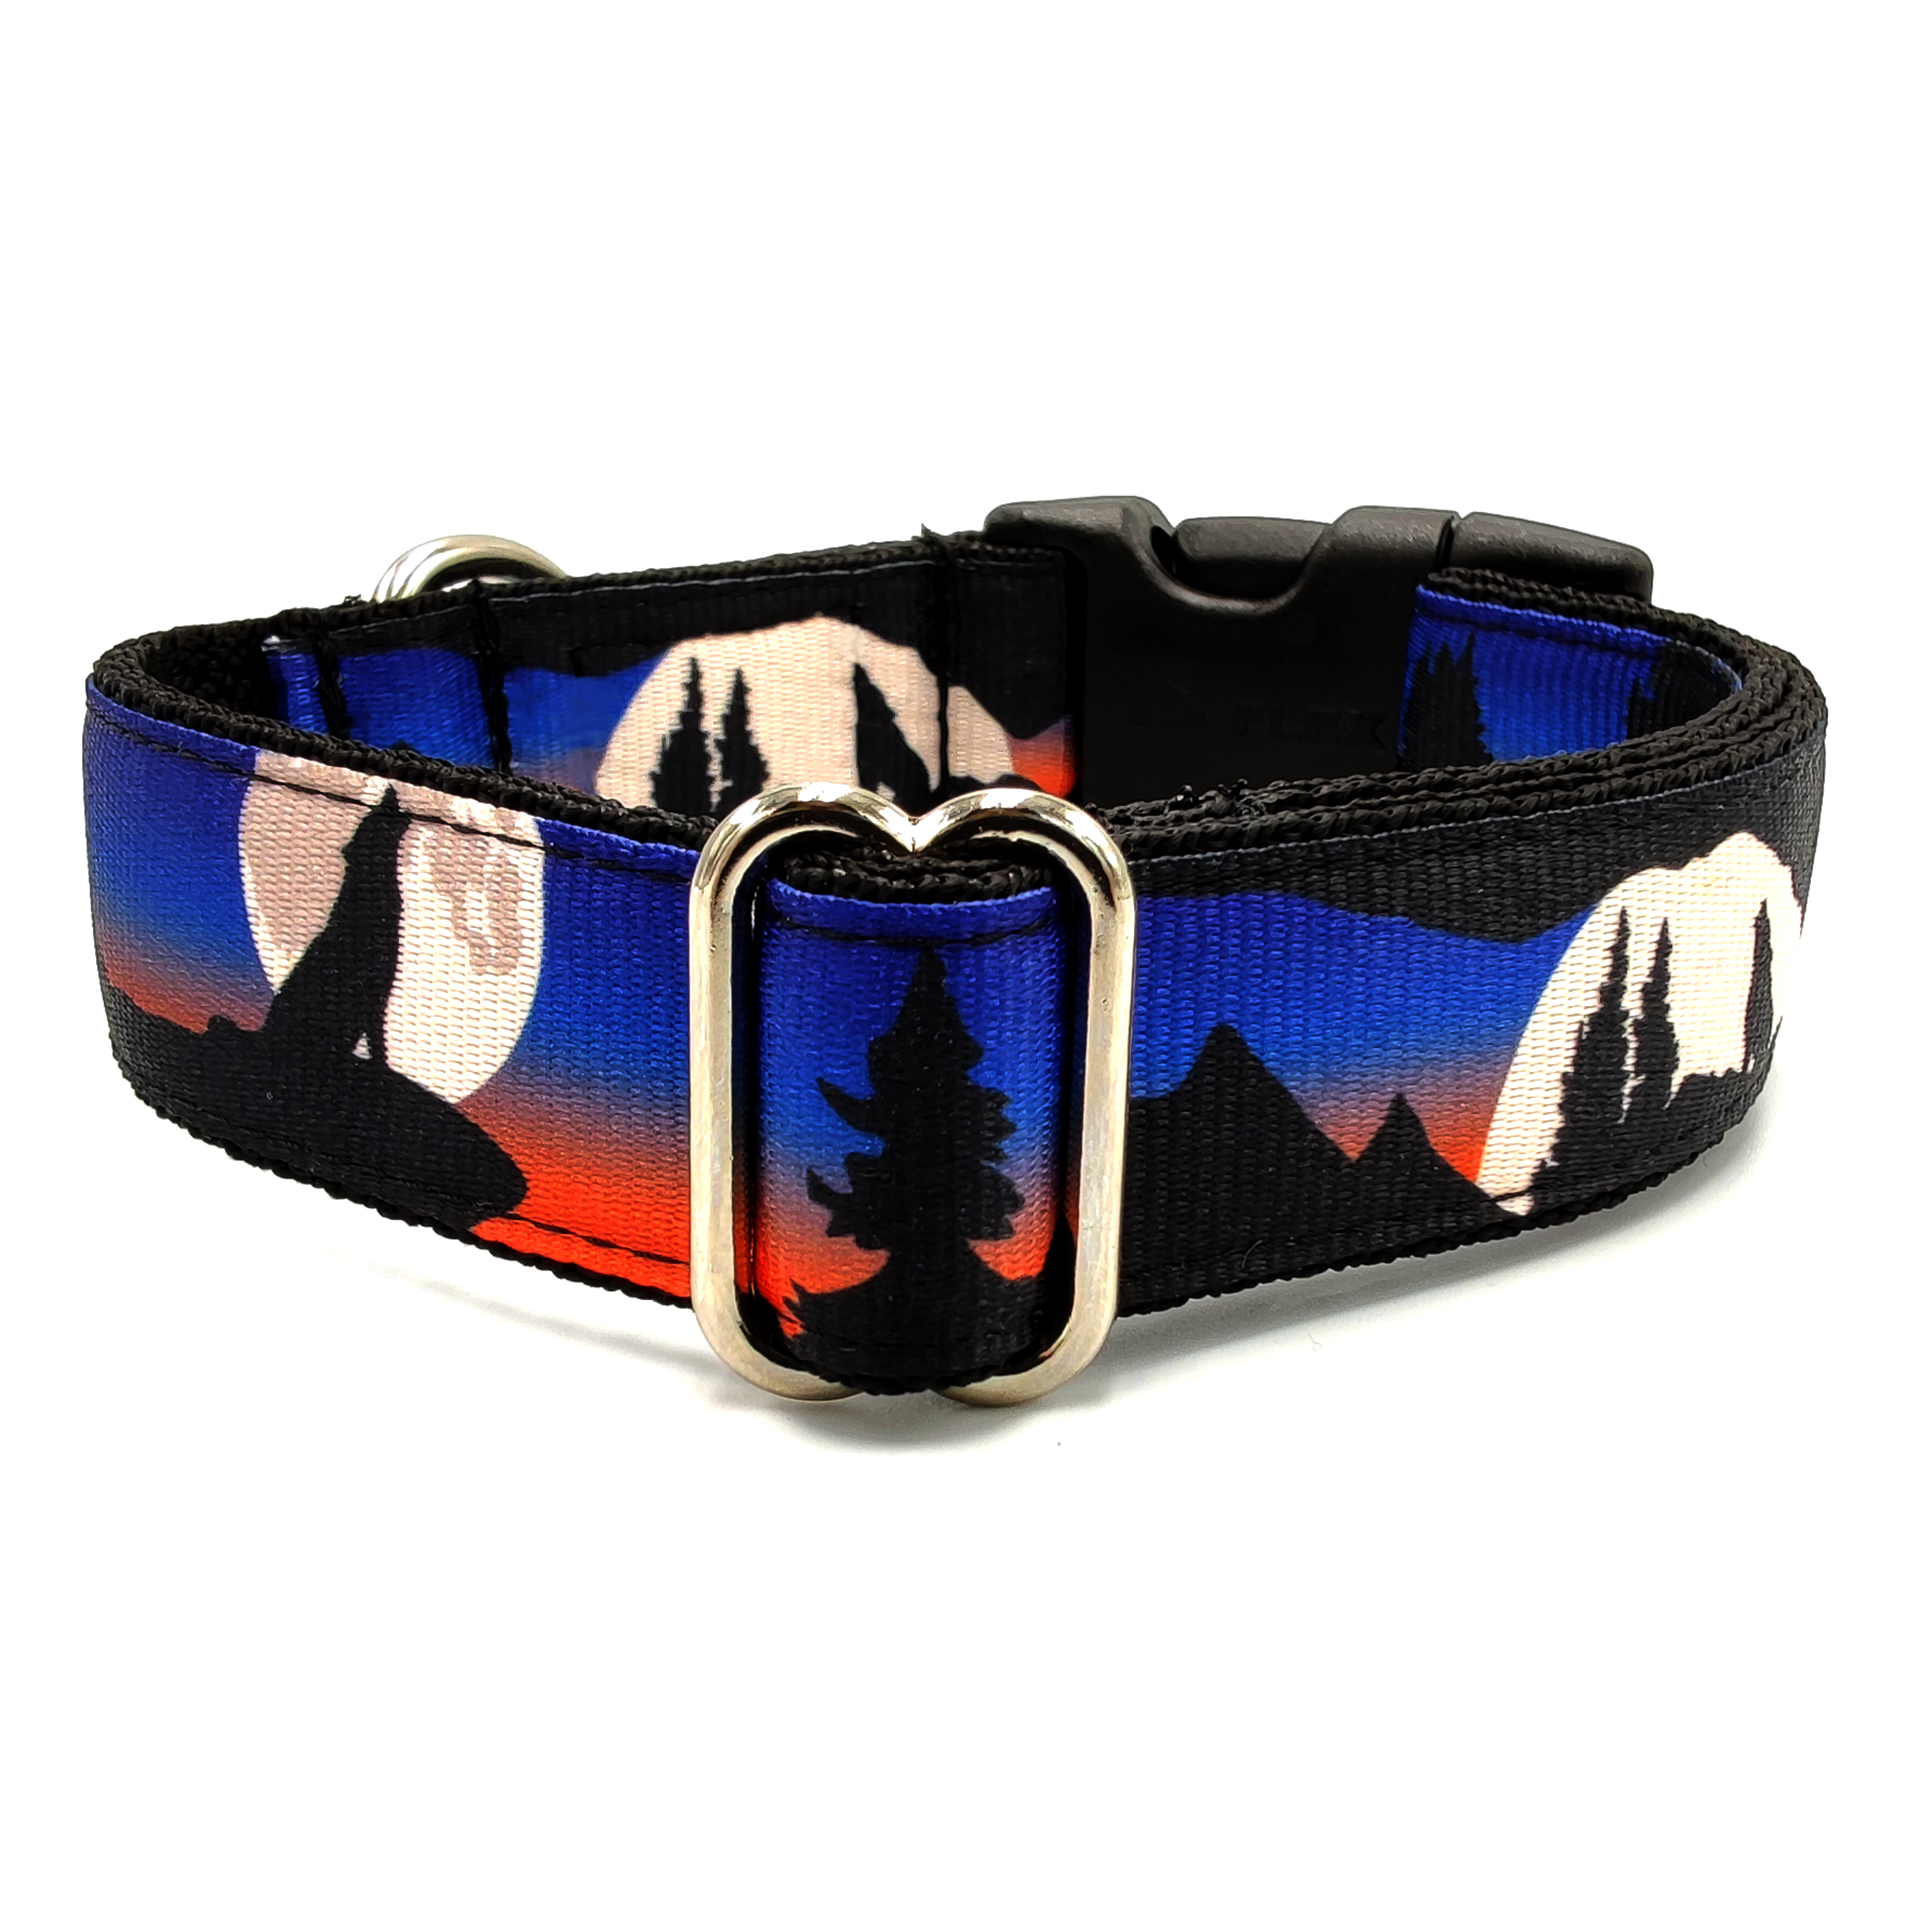 Night shift dog collar